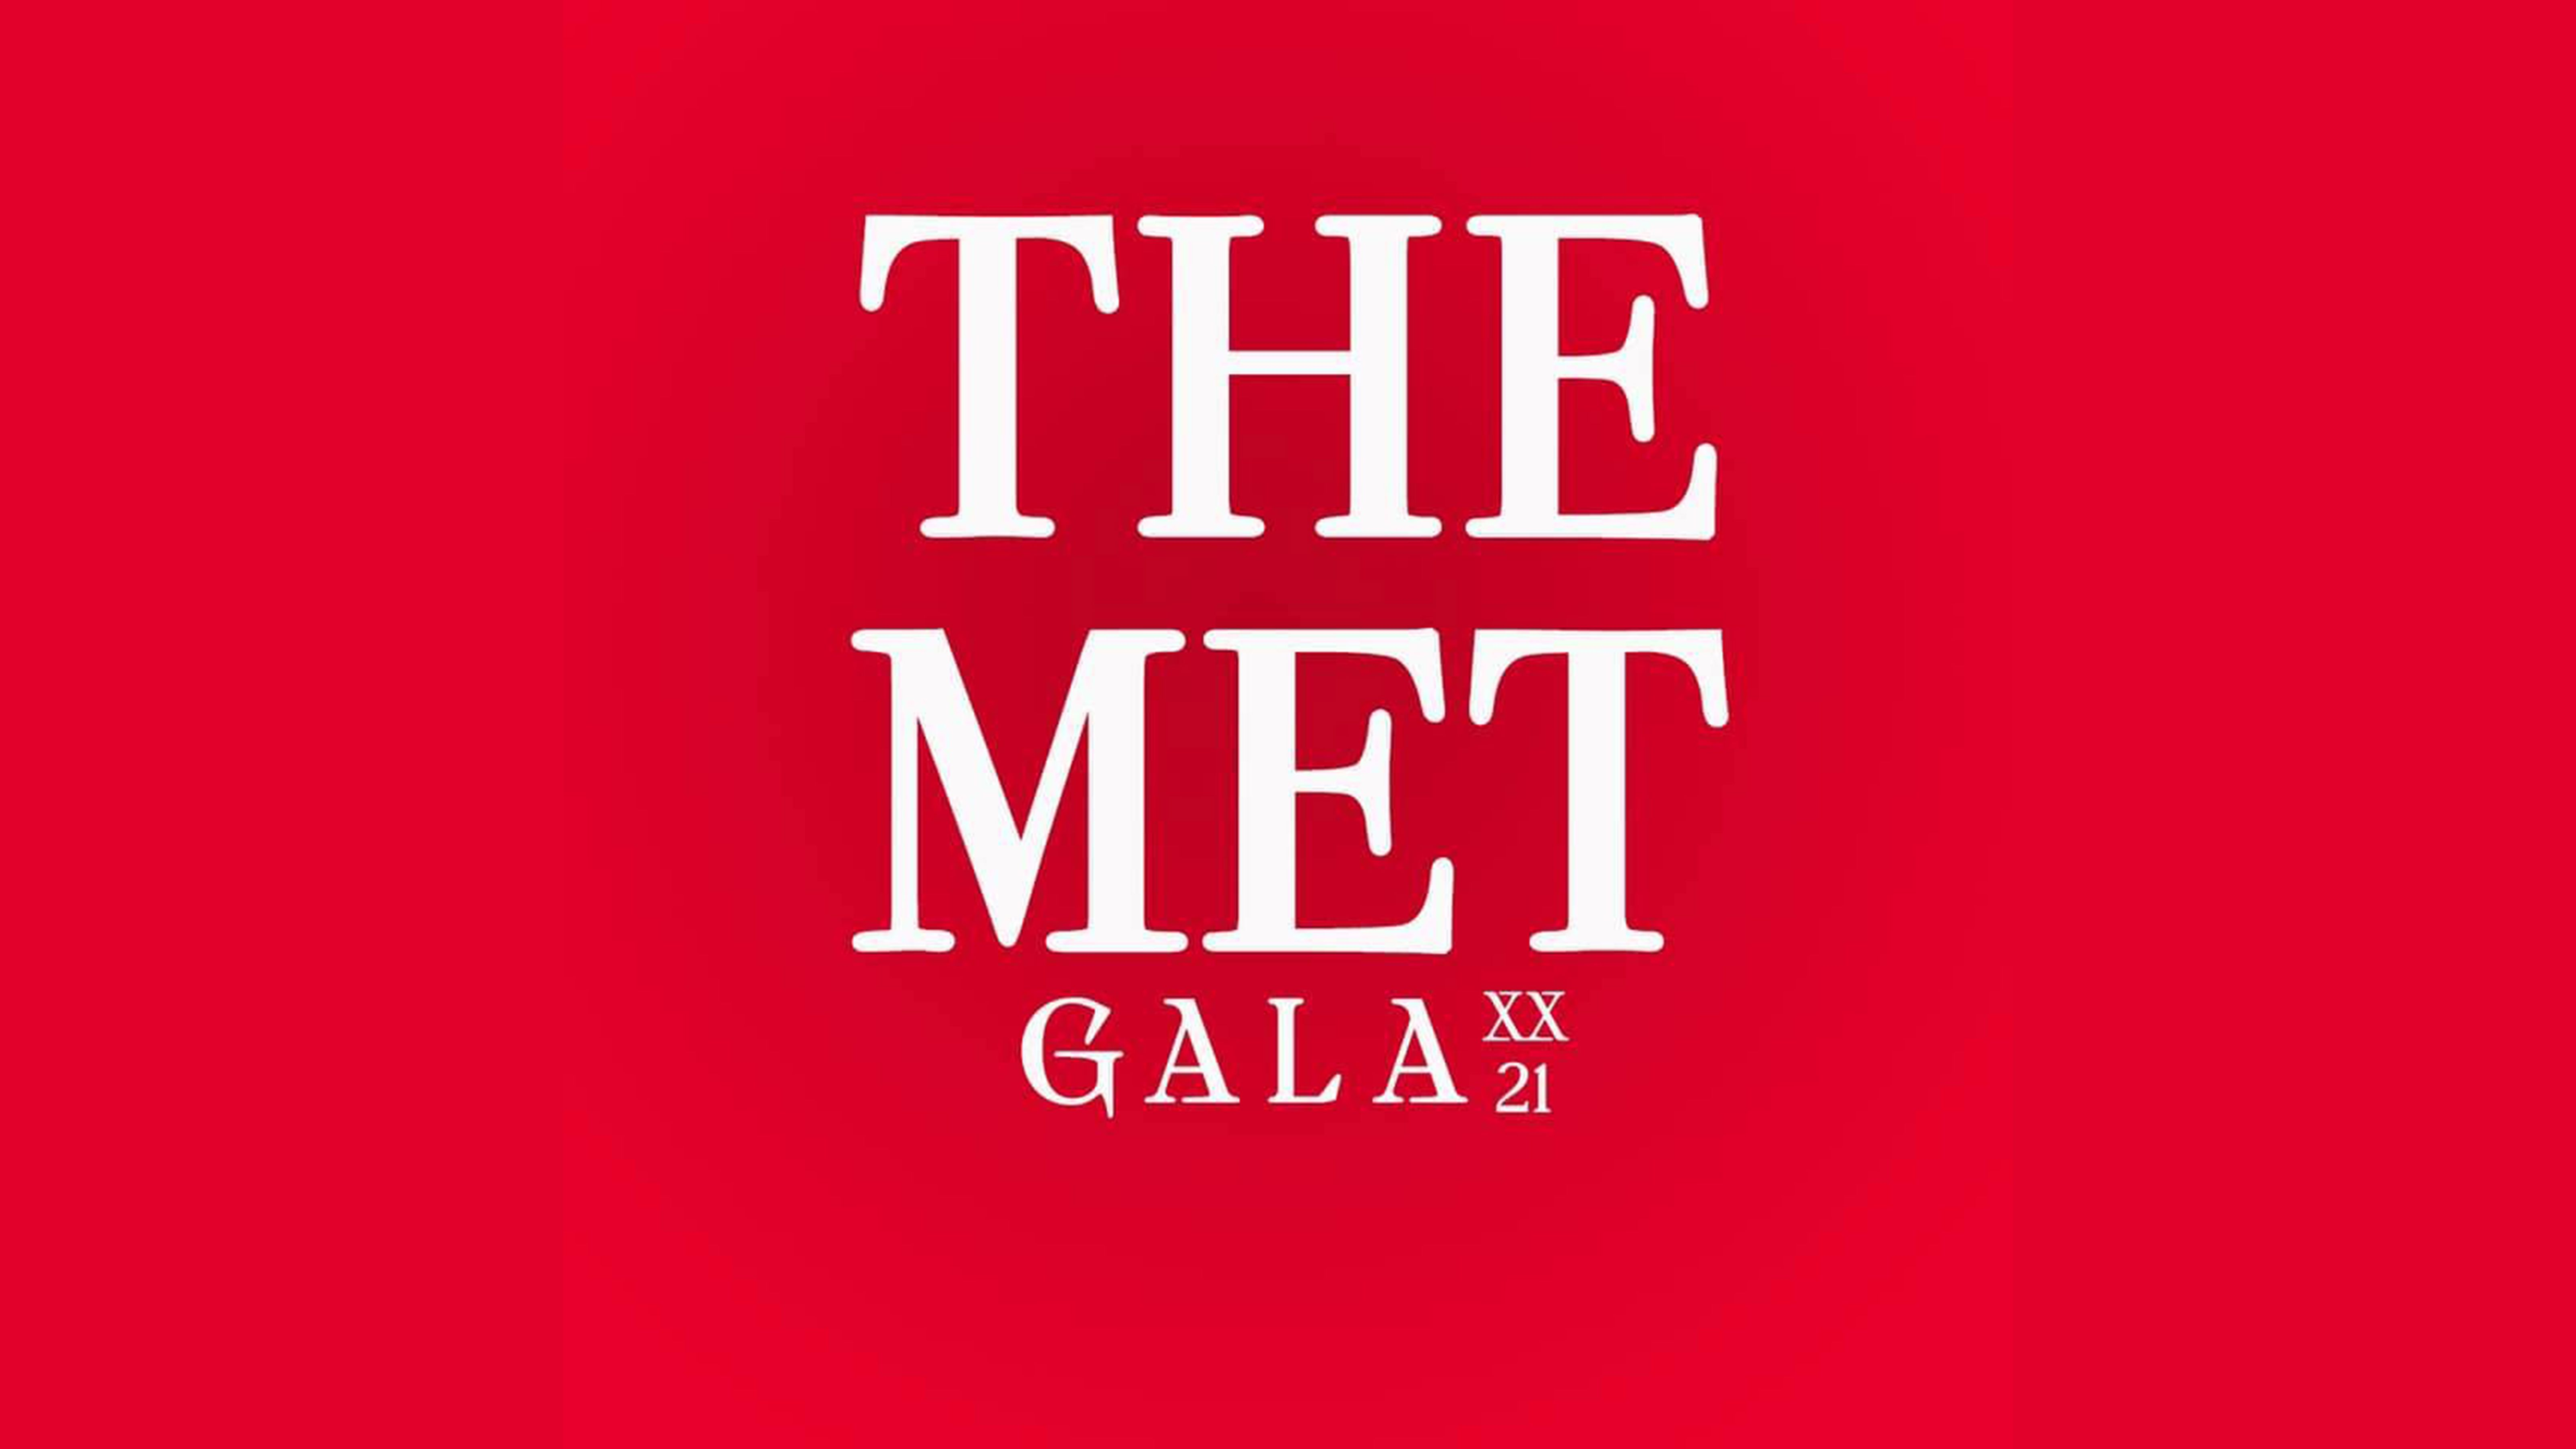 What exactly is Met Gala for photo from The Met Gala 2021